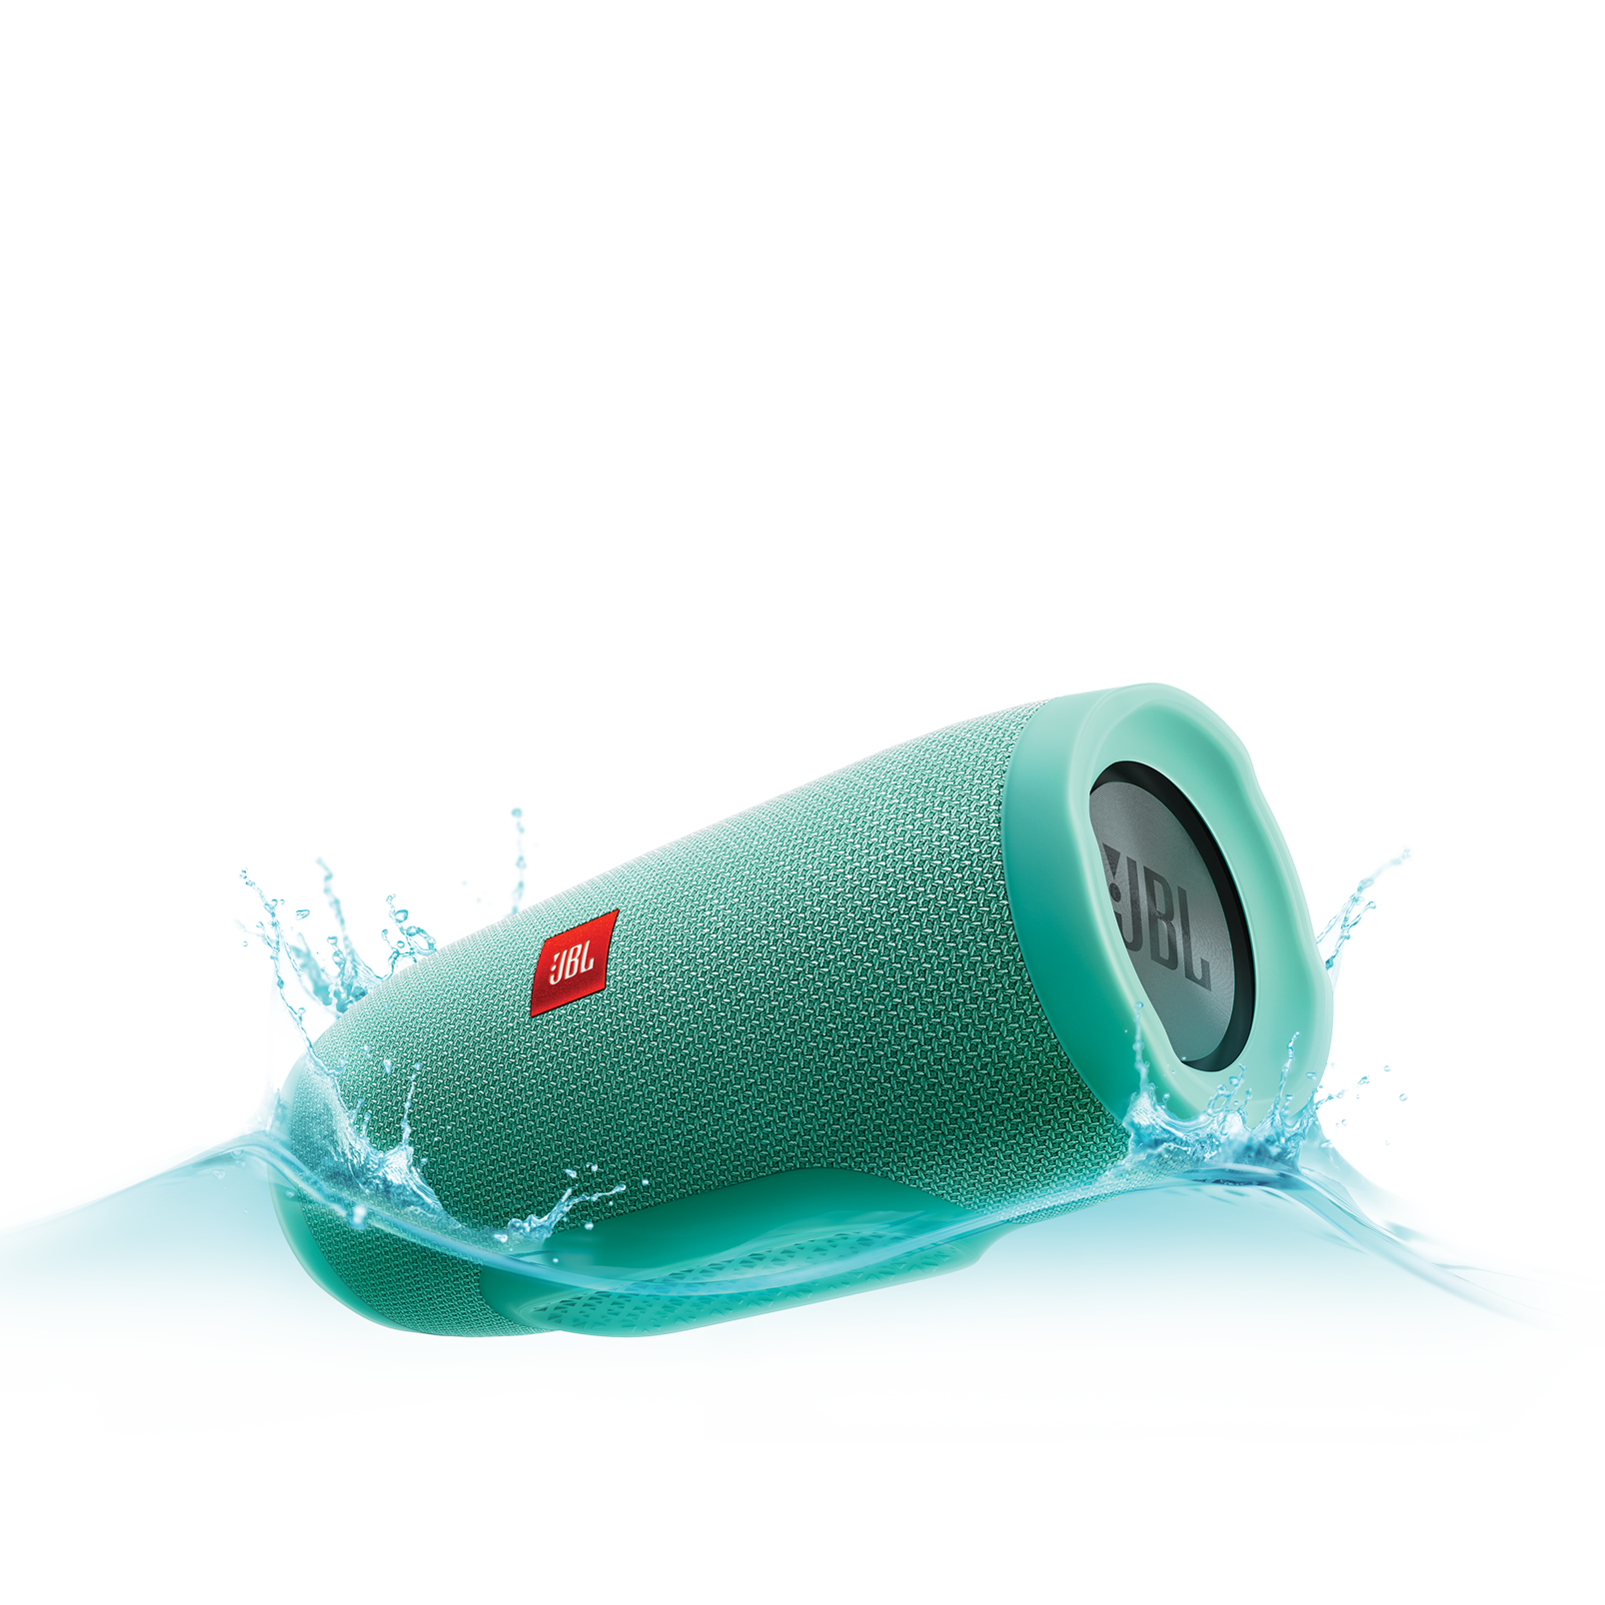 JBL Charge 3 - Teal - Full-featured waterproof portable speaker with high-capacity battery to charge your devices - Hero